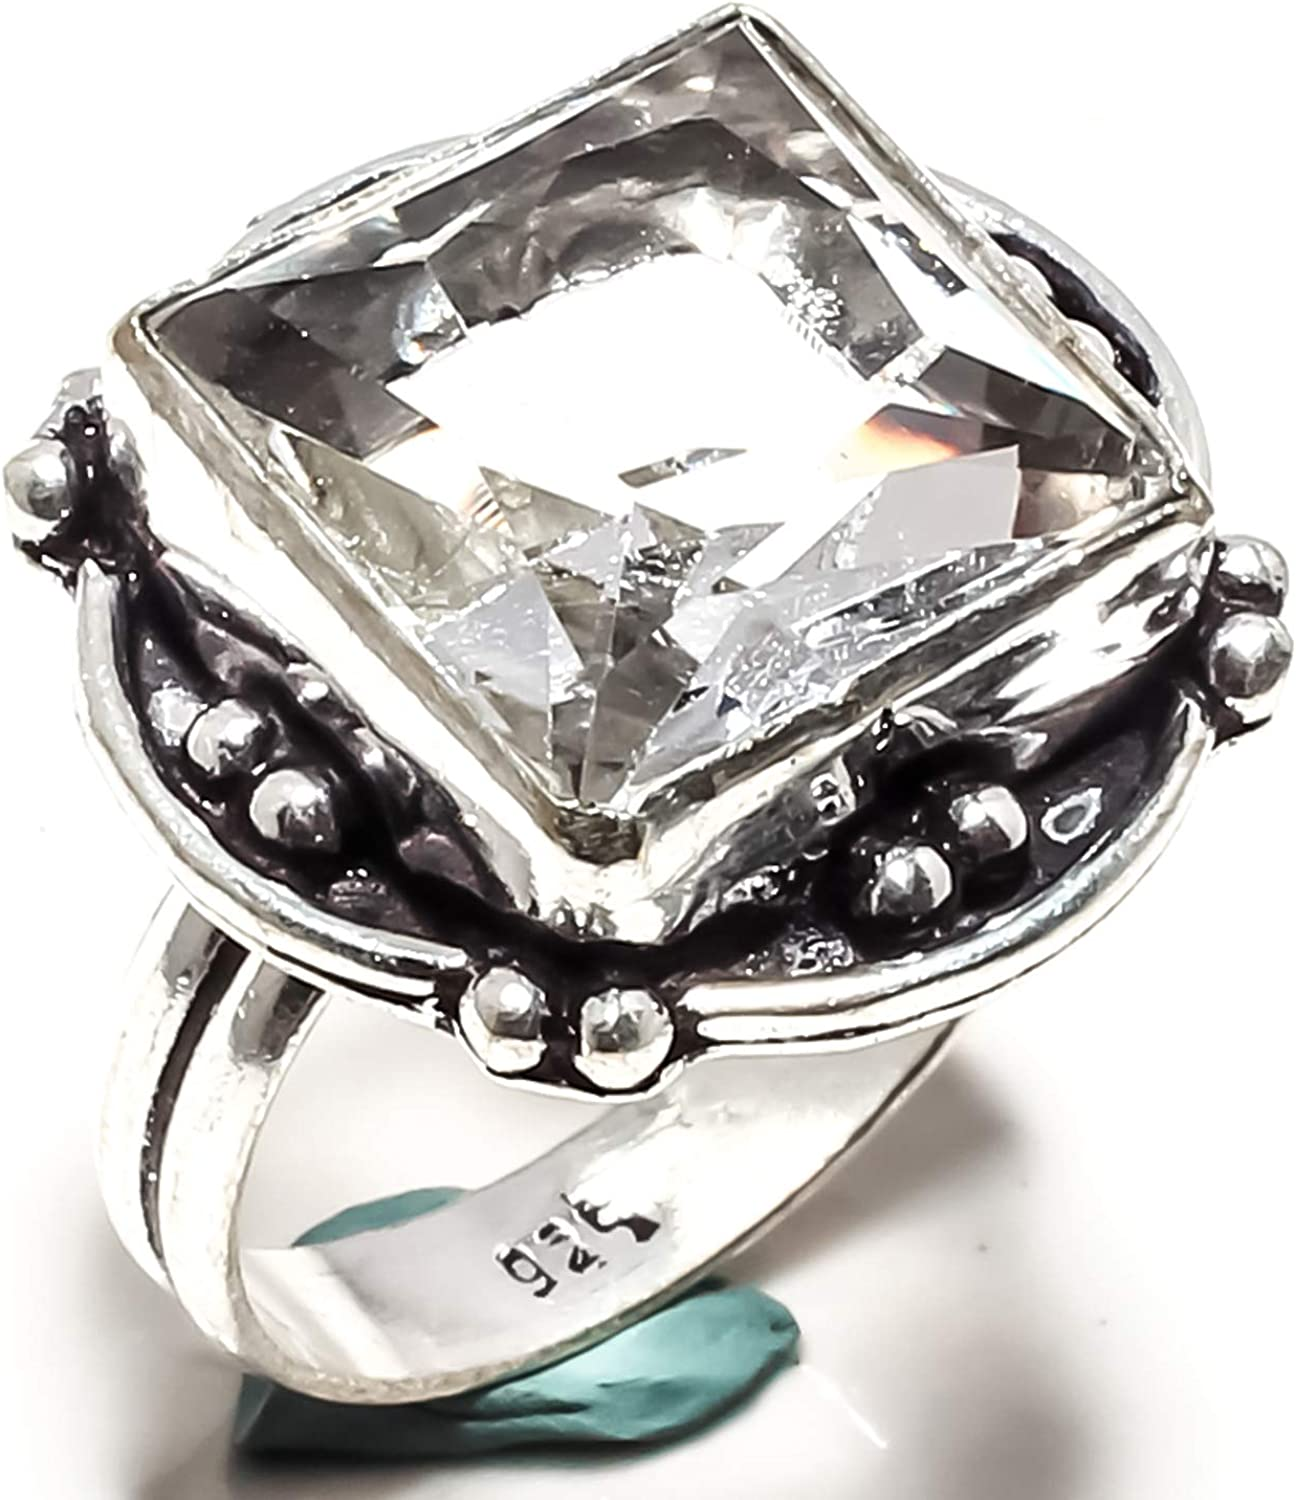 - 8.75 US SF-1842 jewelsworld White Topaz Gemstone Ring Handmade 925 Sterling Silver Plated Jewelry -Statement Ring - - Ring Size